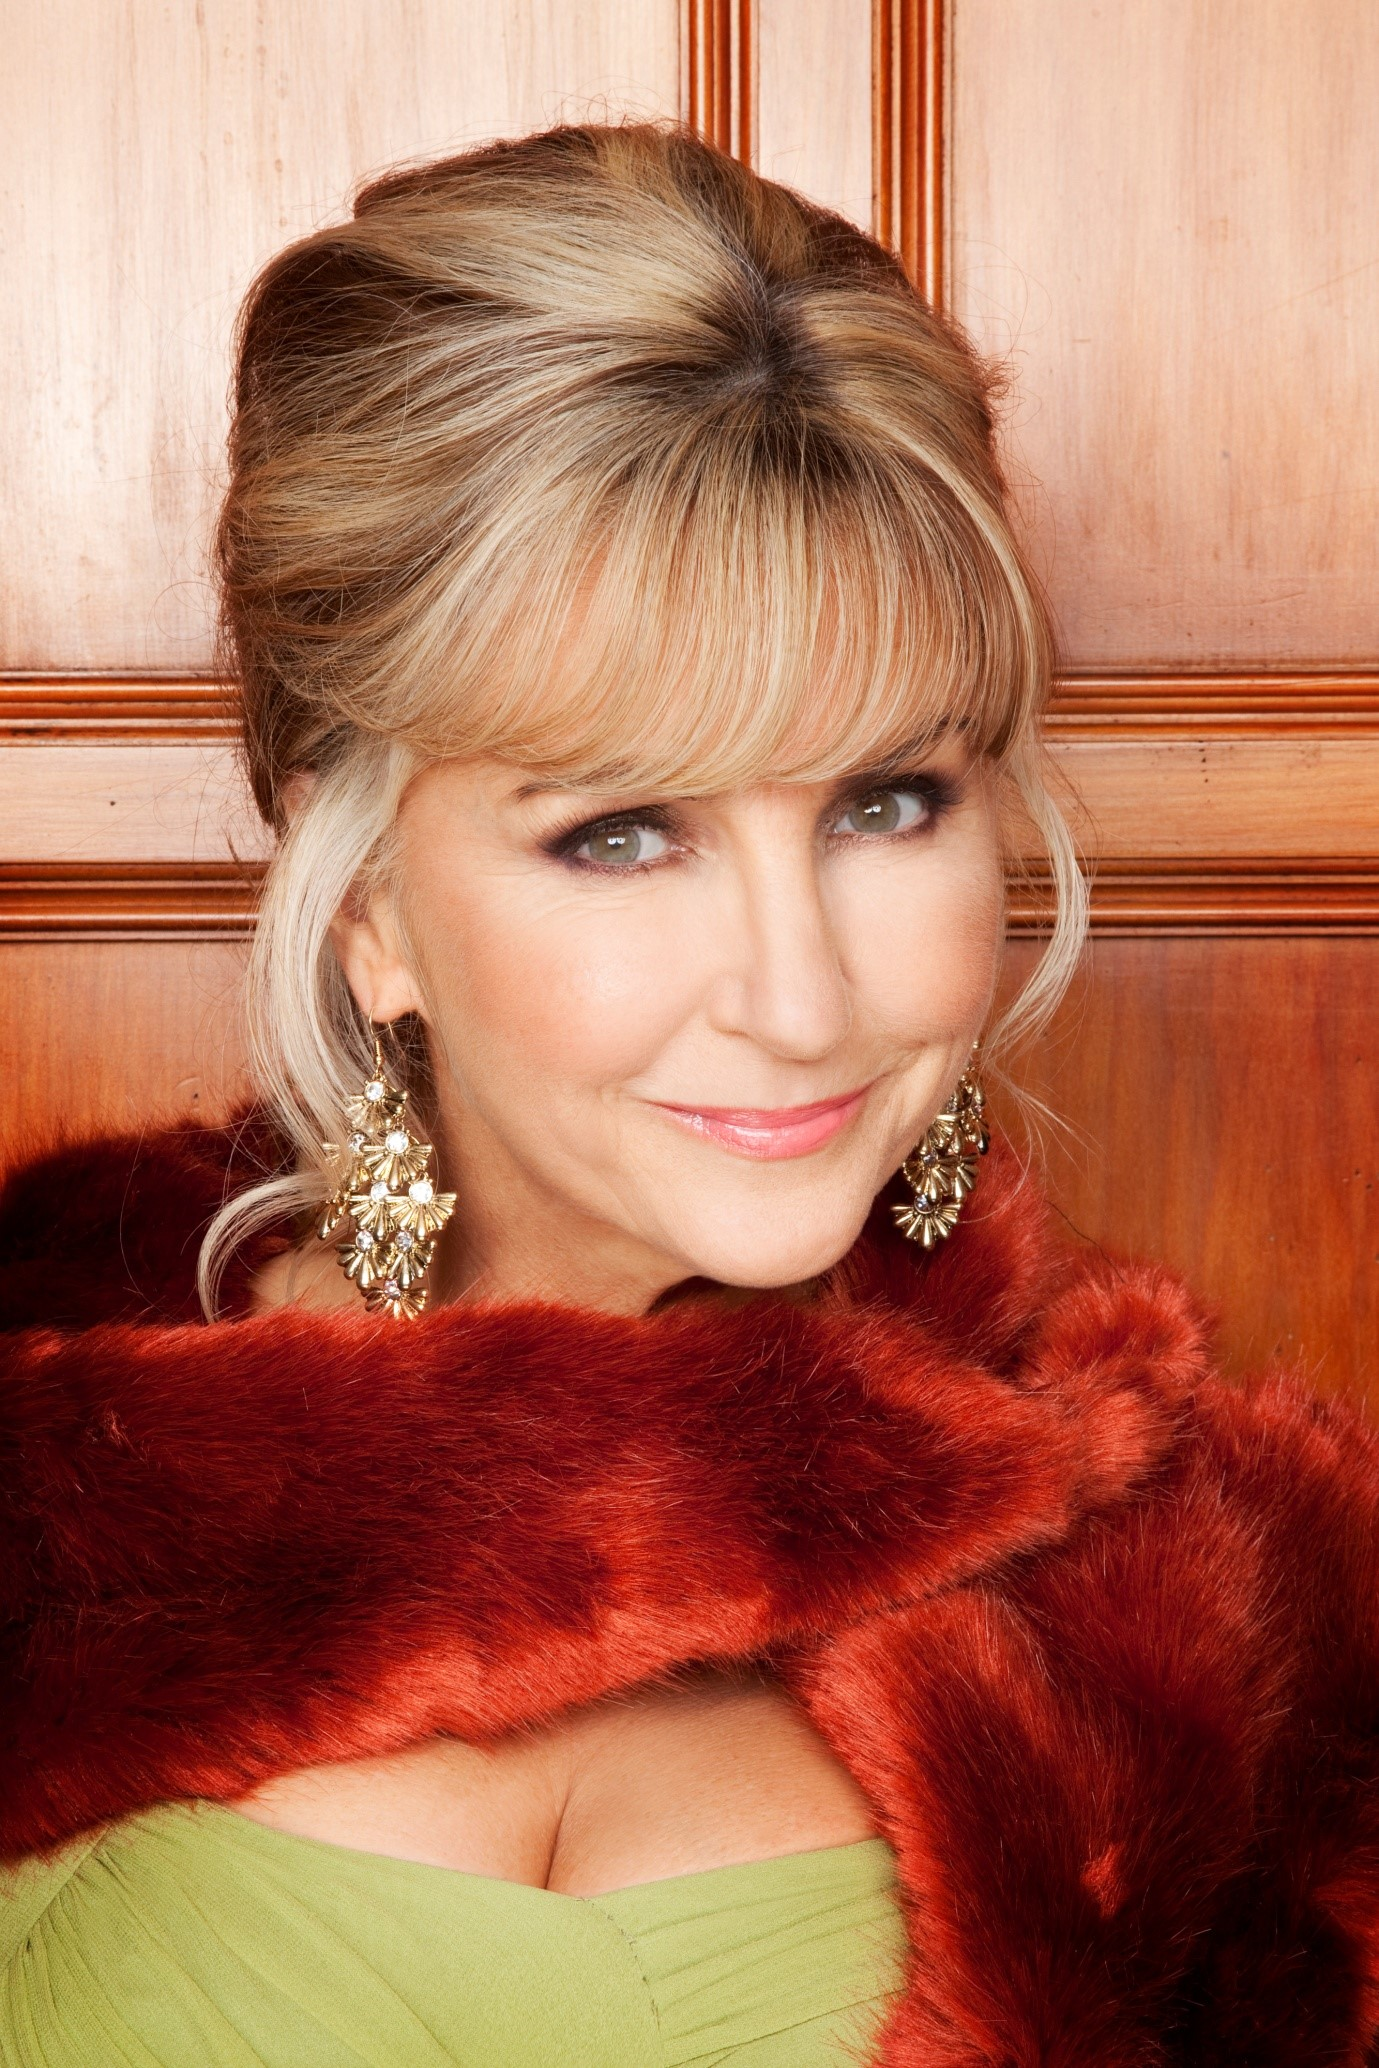 THE BIG INTERVIEW: Lesley Garrett speaks to the County Gazette ahead of her show at the McMillan Theatre in Bridgwater